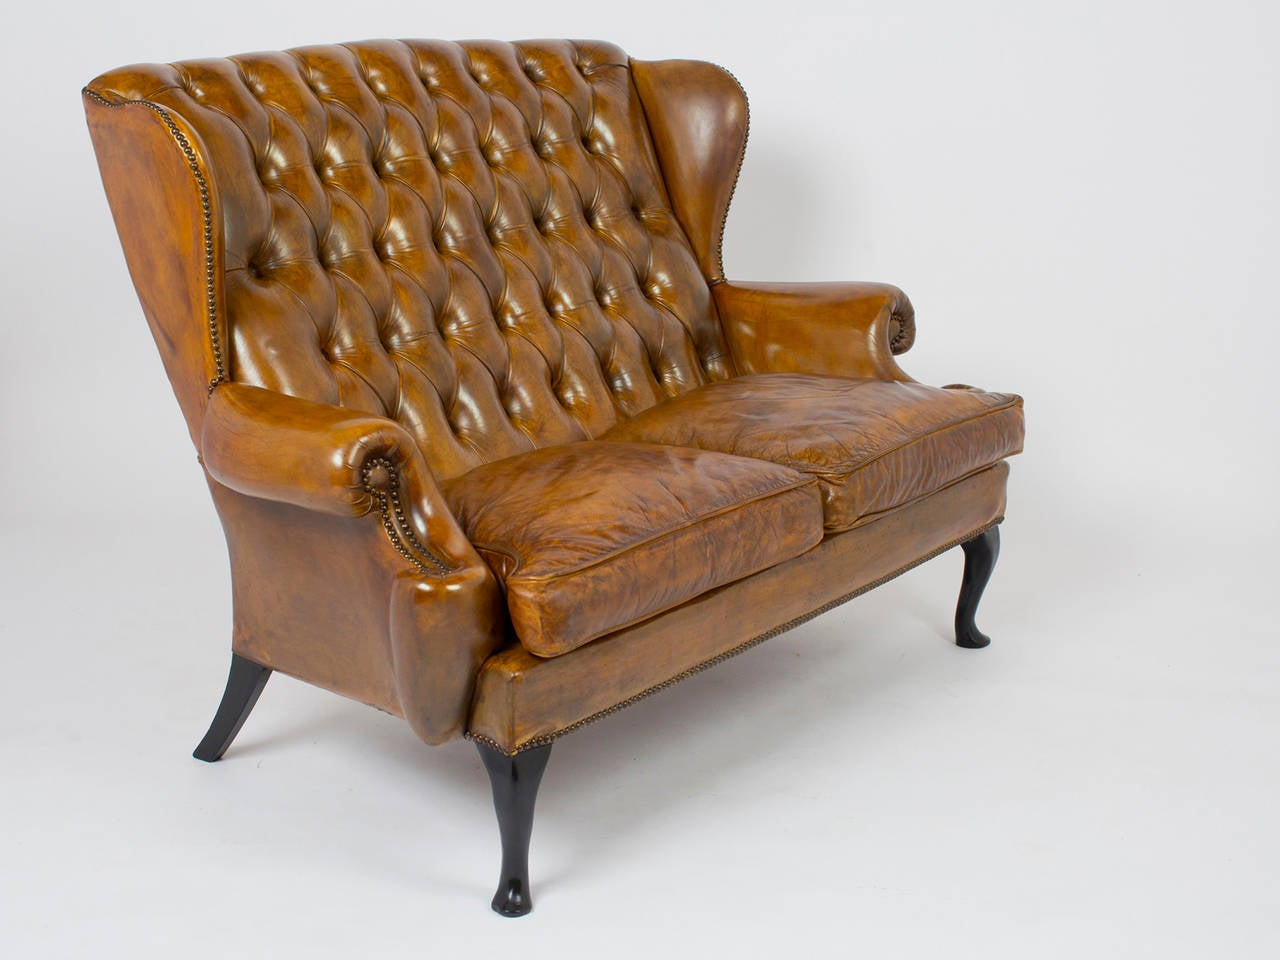 Vintage tufted leather wingback sofa at 1stdibs for Tufted leather sleeper sofa